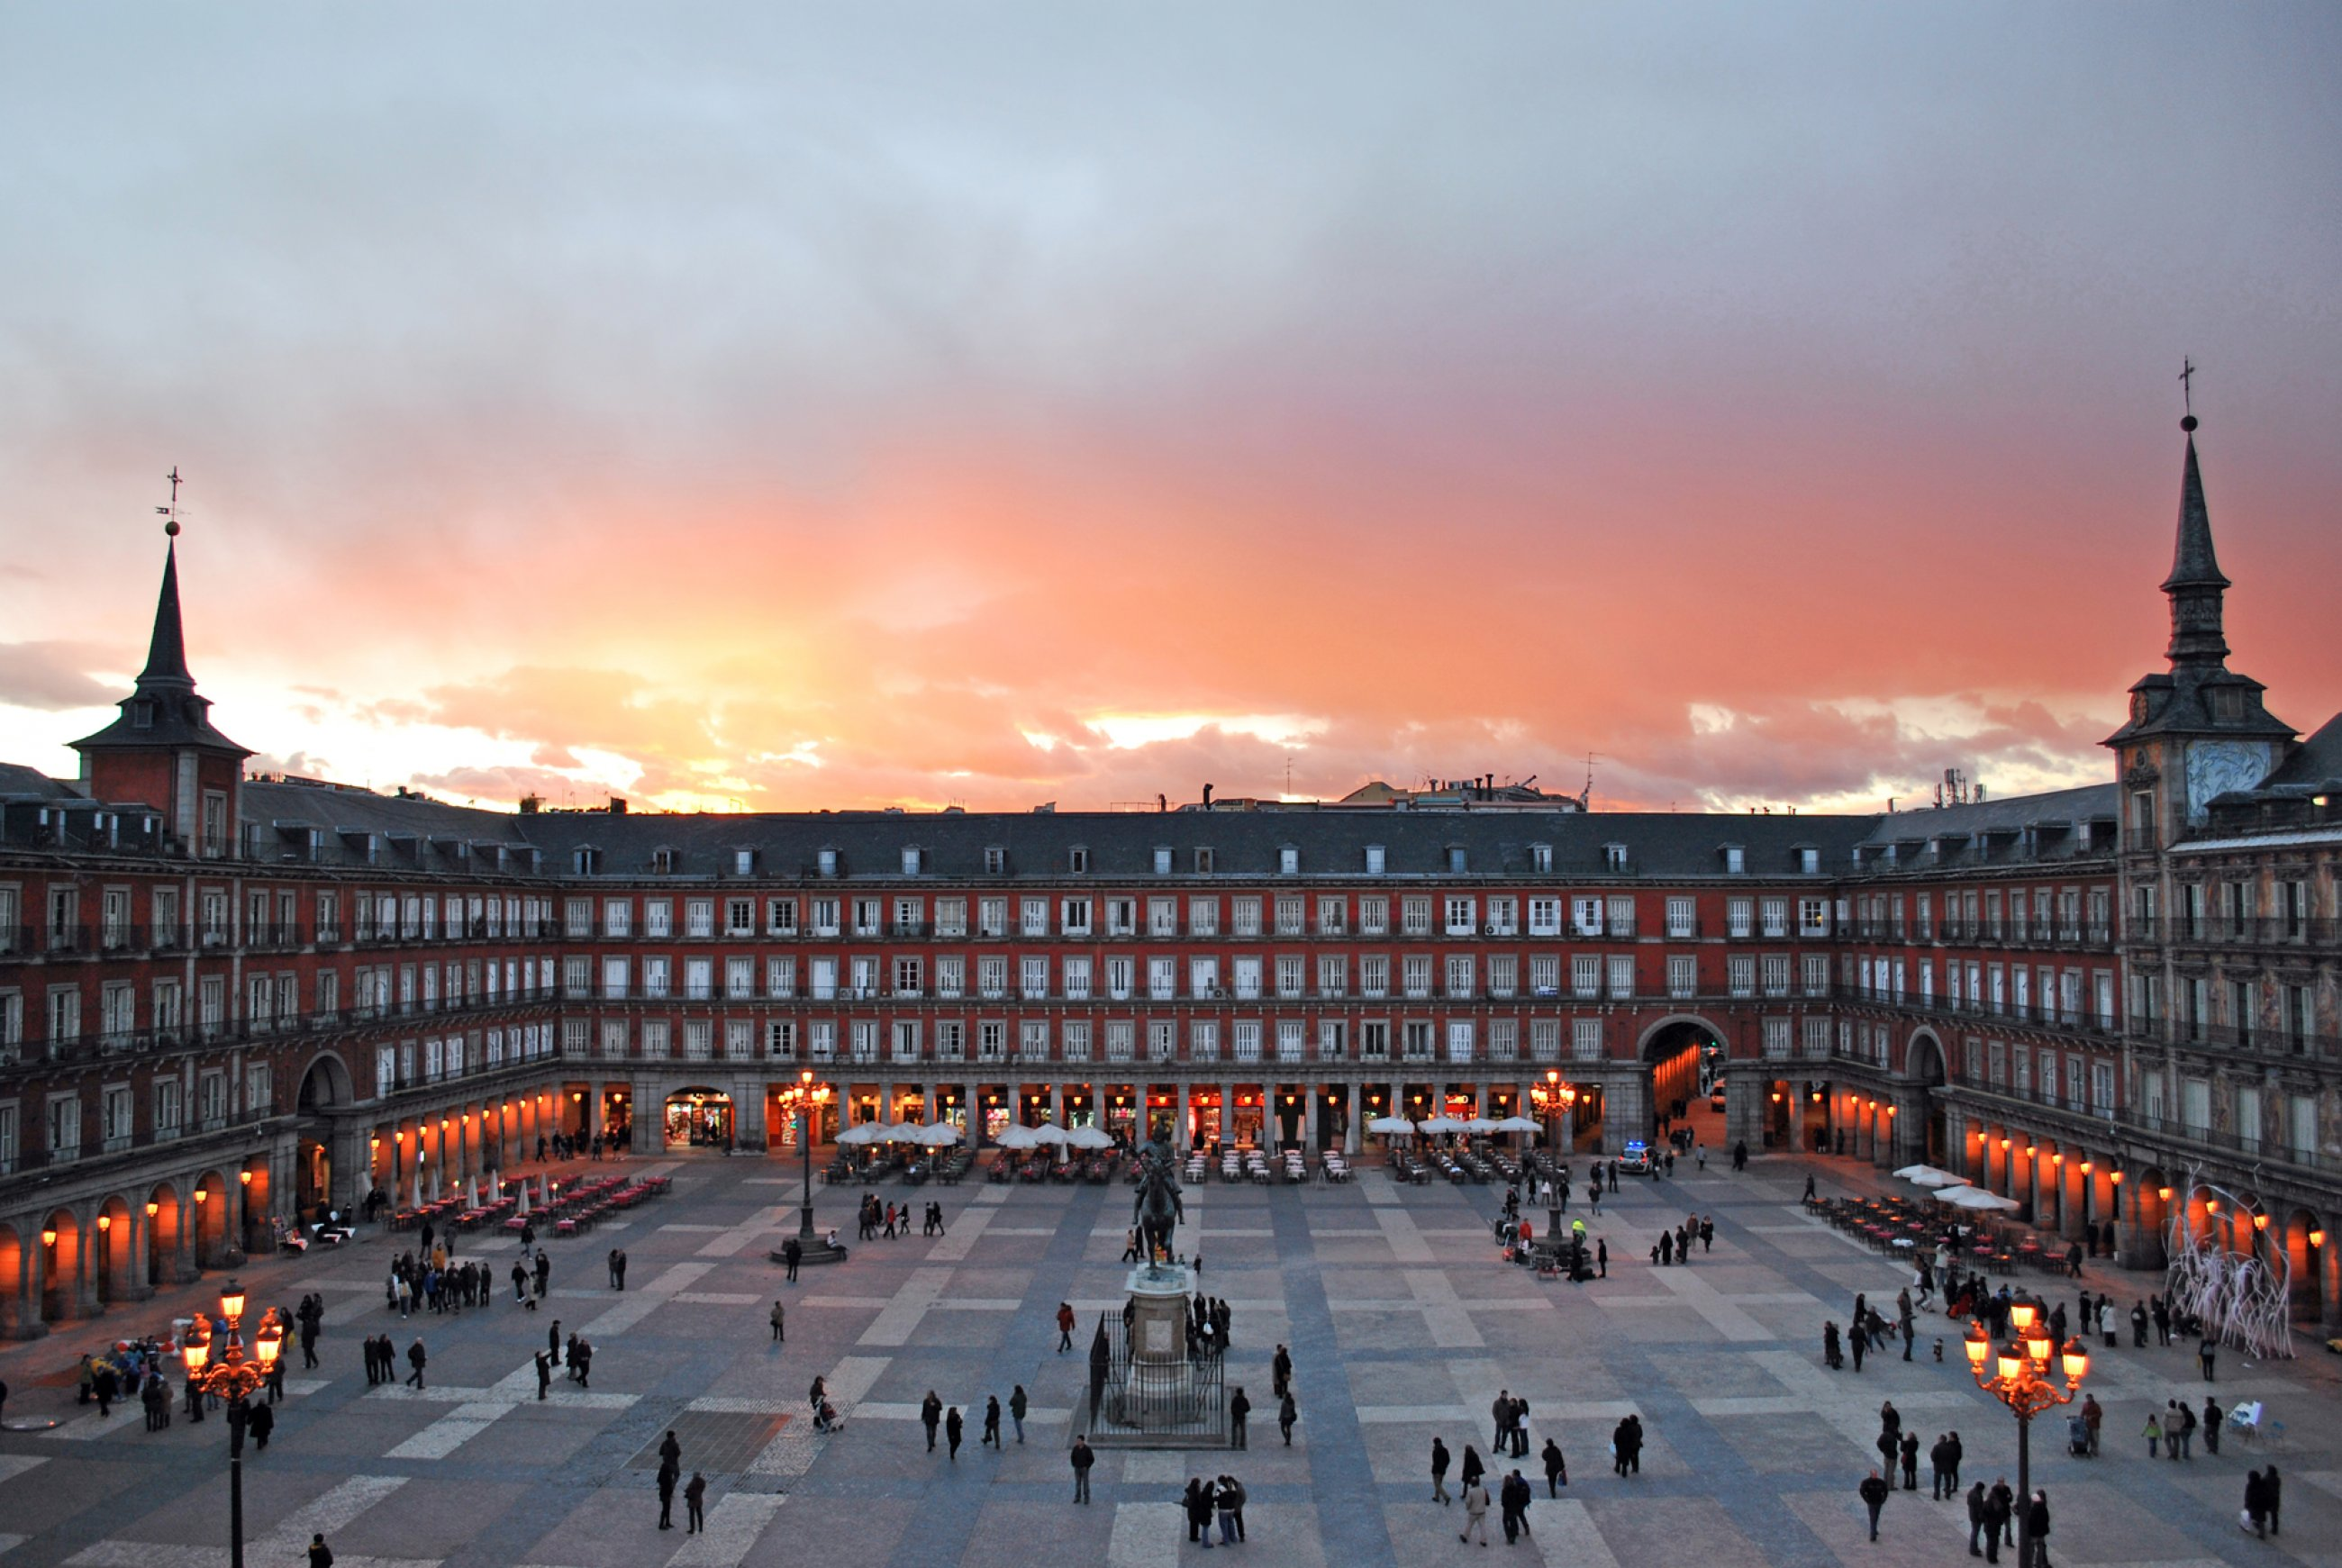 https://bubo.sk/uploads/galleries/7351/wikipedia-plaza-mayor-de-madrid-02.jpg